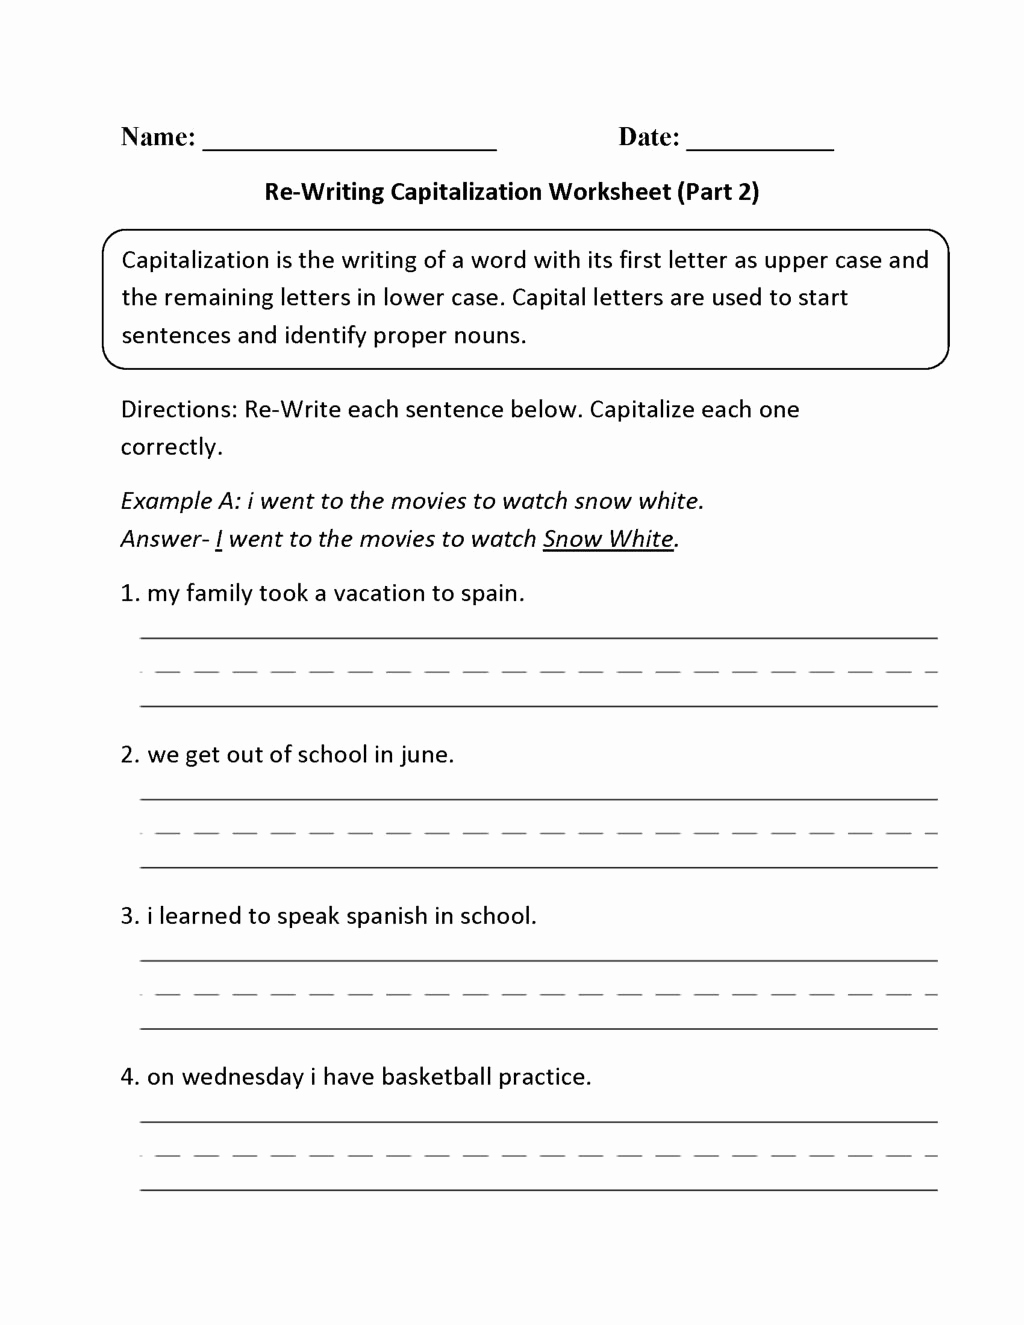 Paragraph Editing Worksheets 4th Grade Unique 12 Paragraph Editing Worksheets 4th Grade